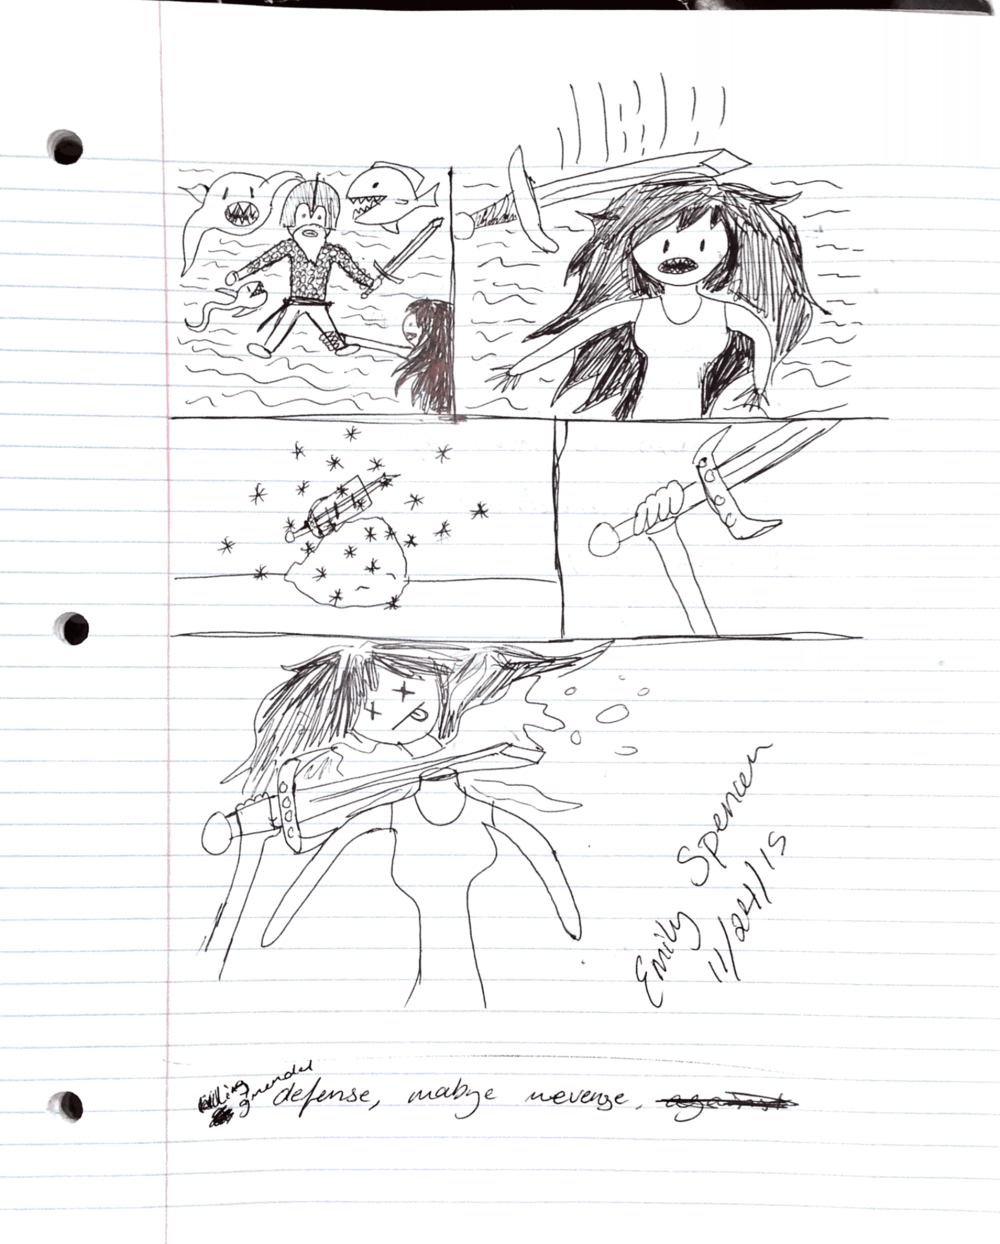 BritLit Beowulf Drawings-12.png